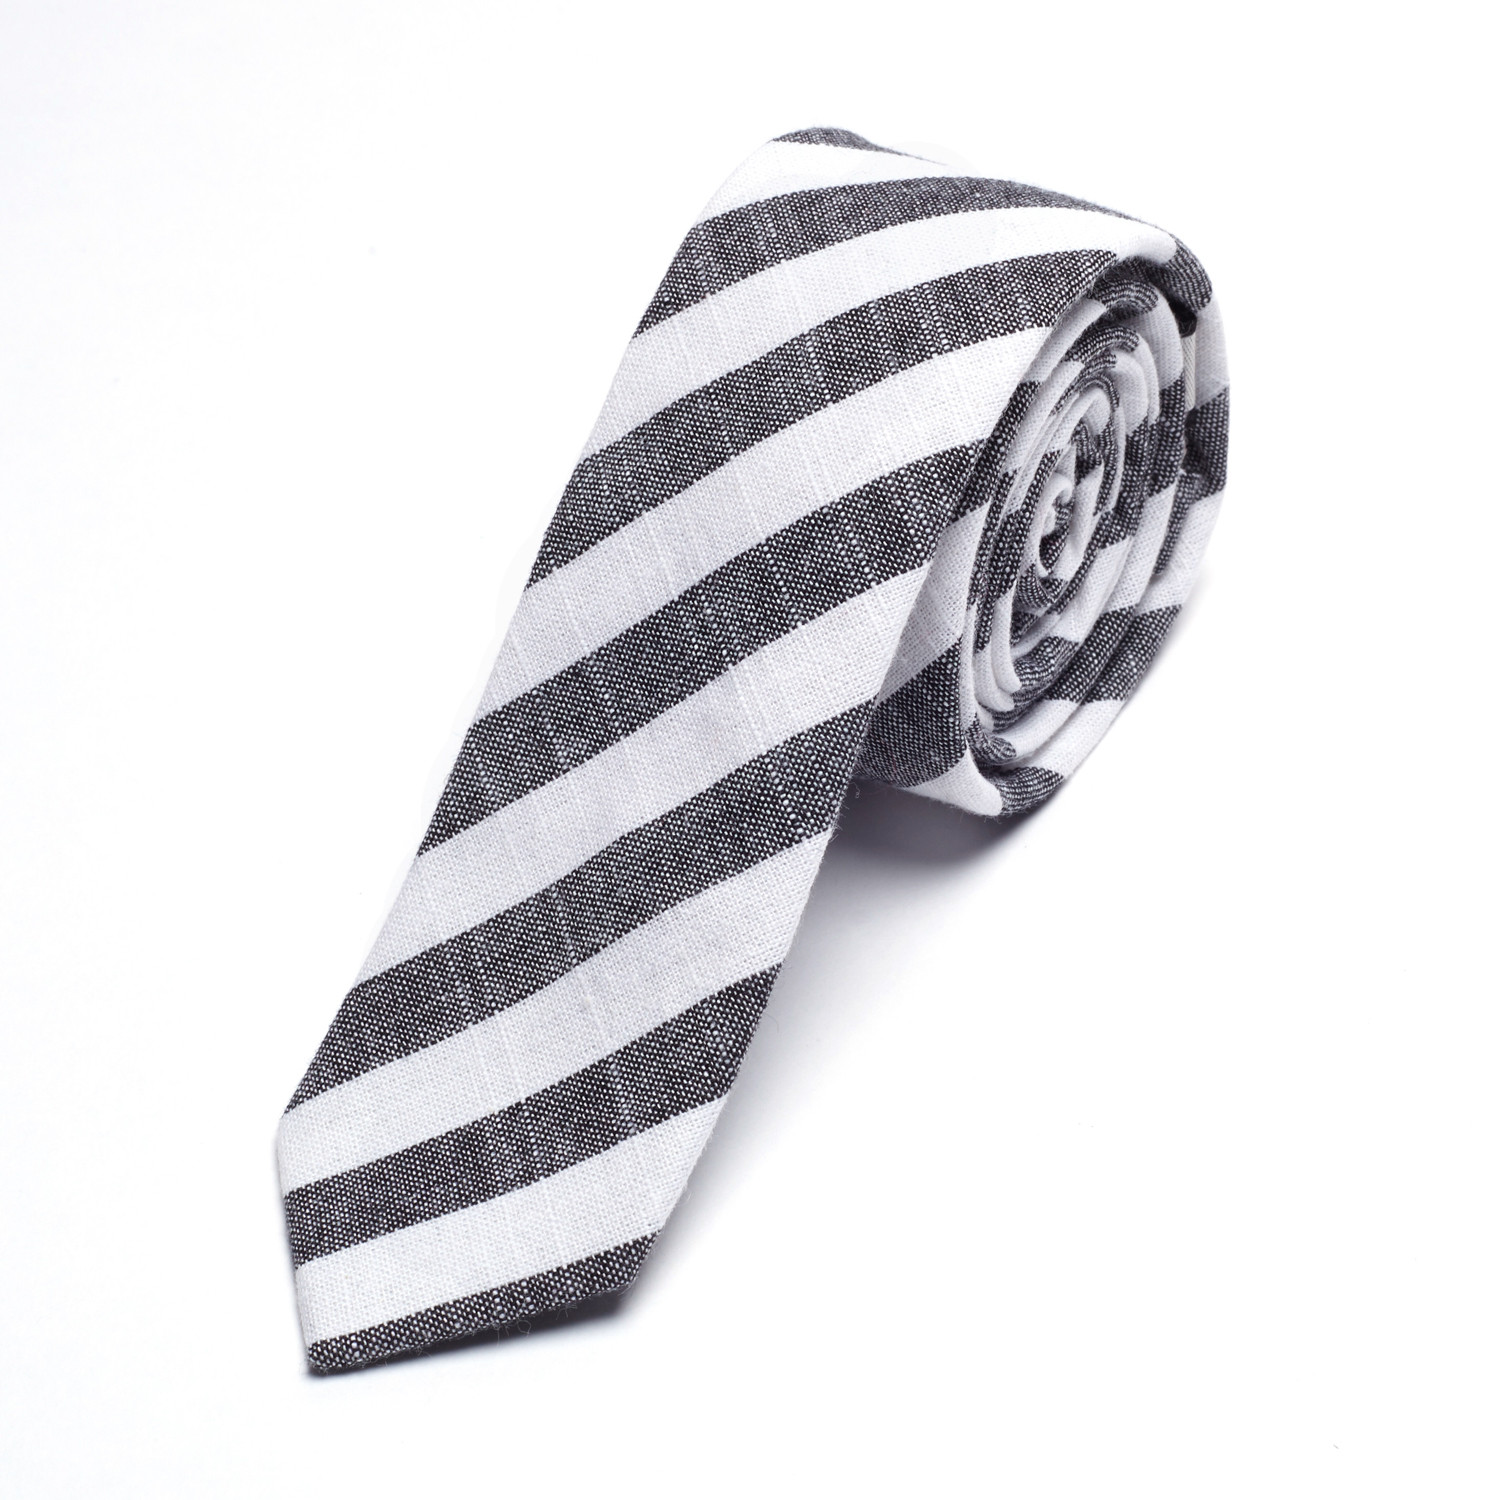 Men's Clothing, Ties and Shoes on Sale at Macy's come in a variety of styles. Shop Macy's Sale & Clearance for men's clothing, Ties & shoes today! Macy's Presents: Penguin Men's Visser Floral Skinny Tie.